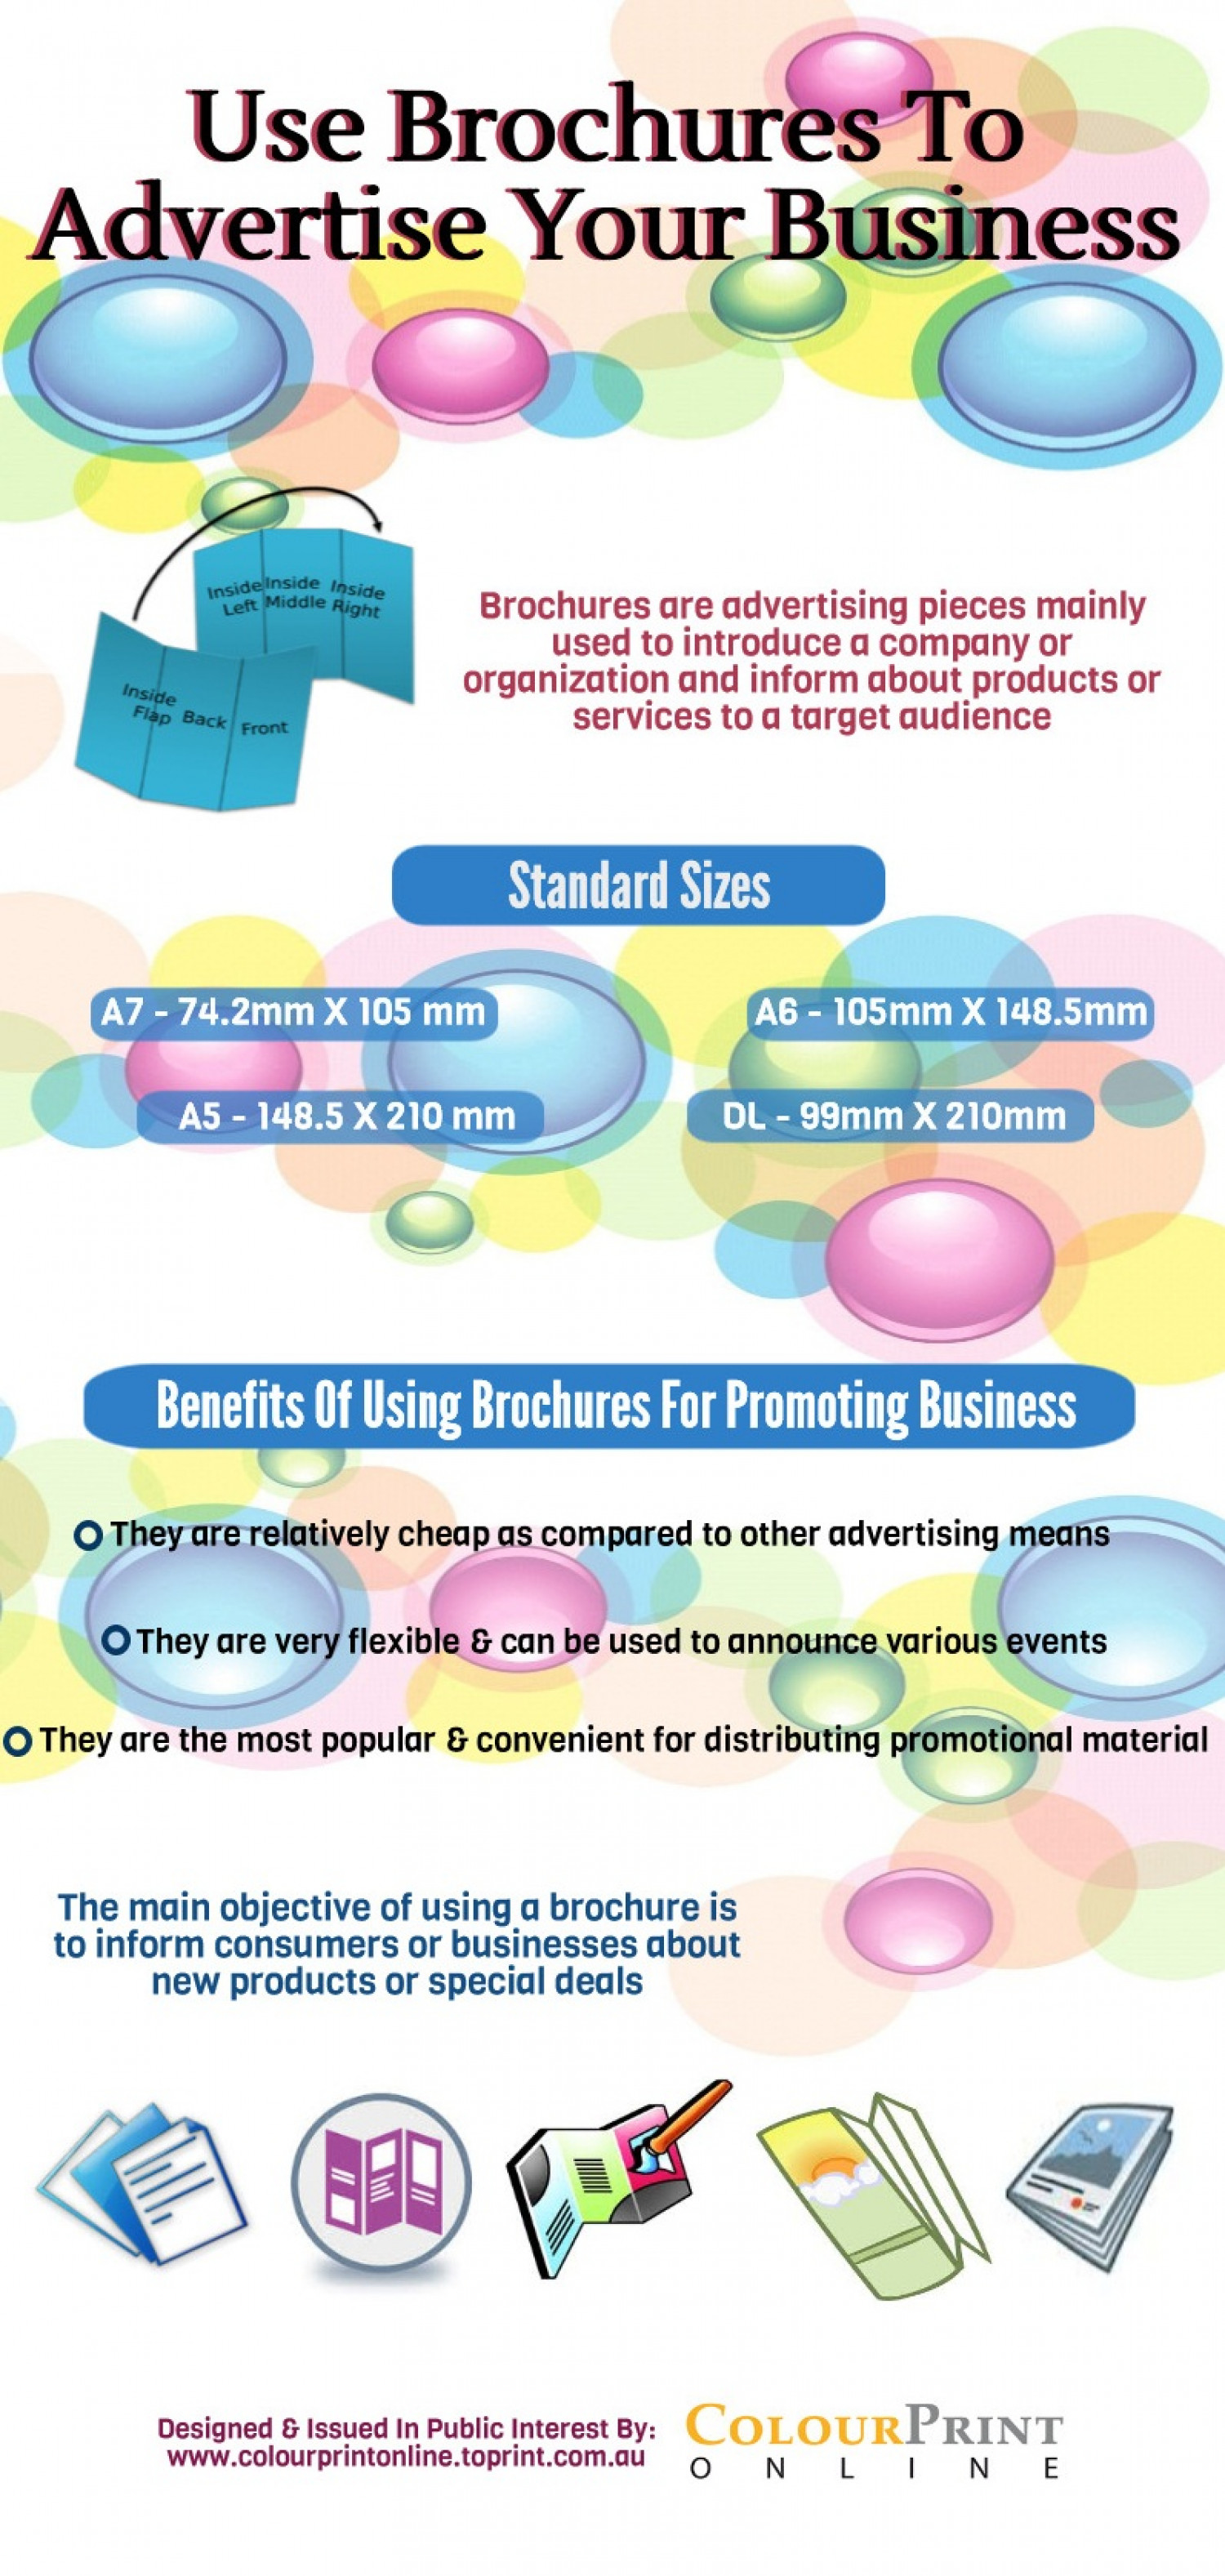 Use Brochures To Advertise Your Business Infographic